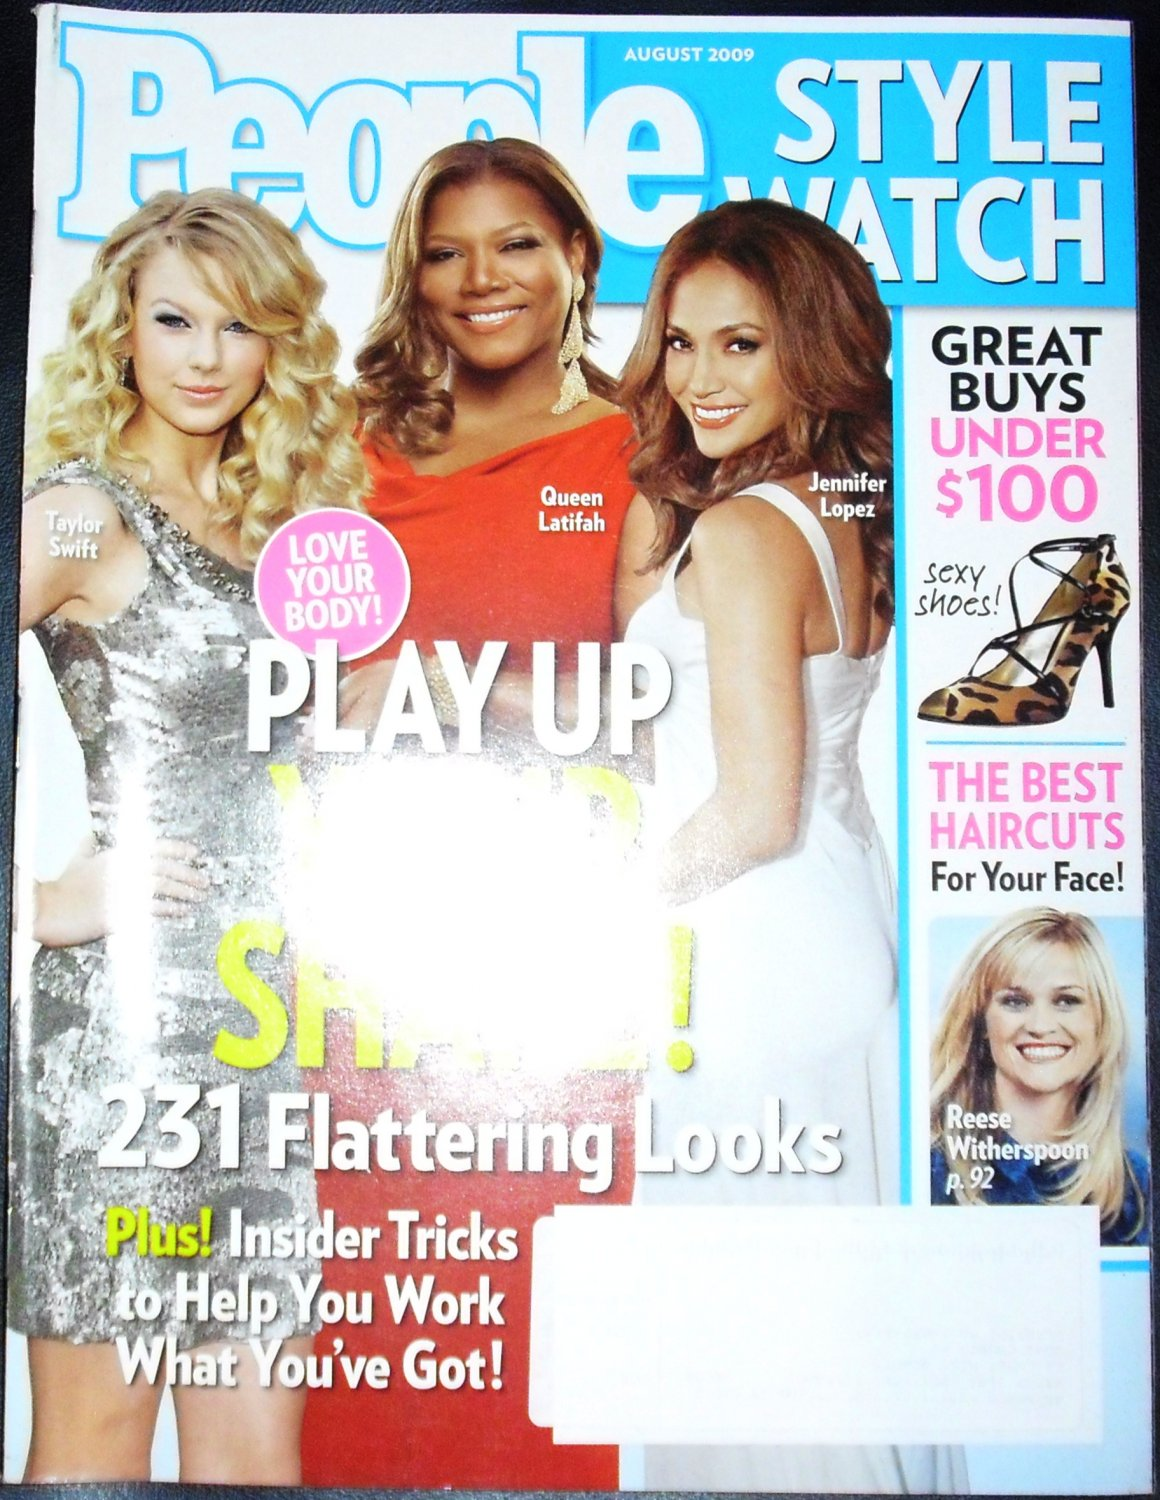 People Style Watch Magazine August 2009